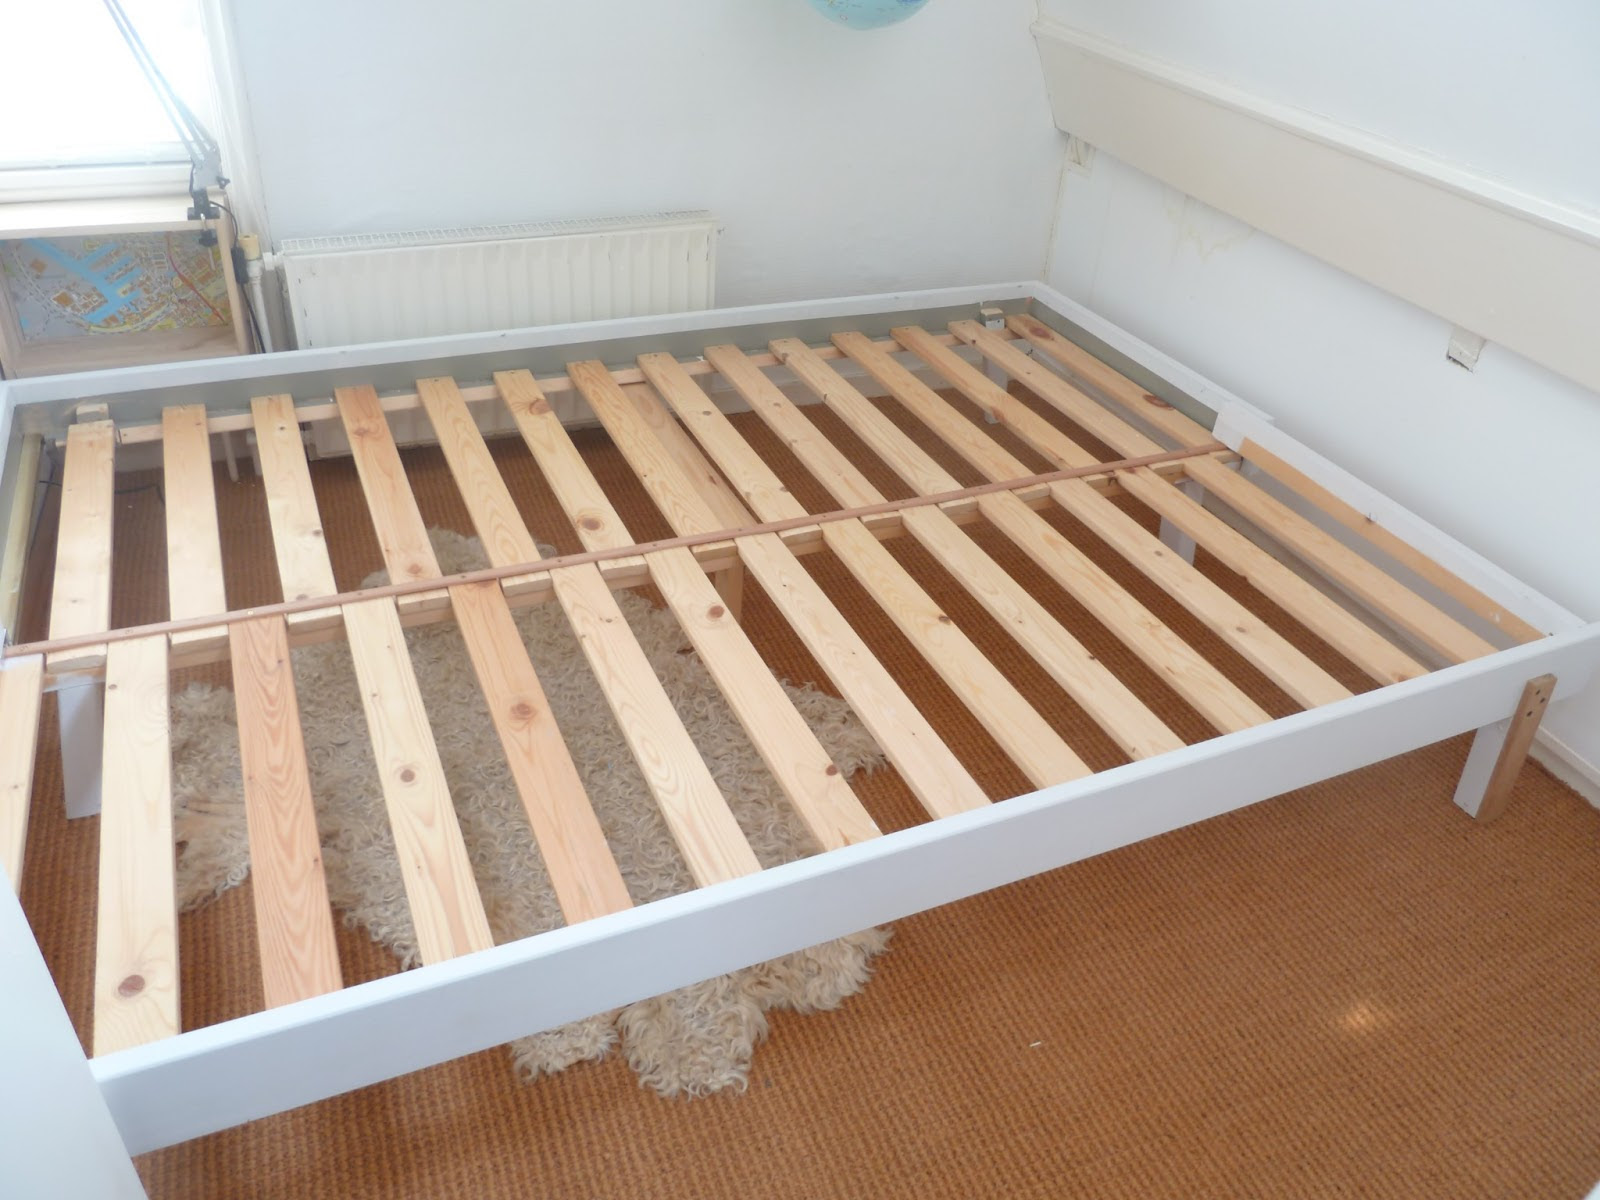 Ikea Wooden Sofa Bed Instructions Wooden Designs